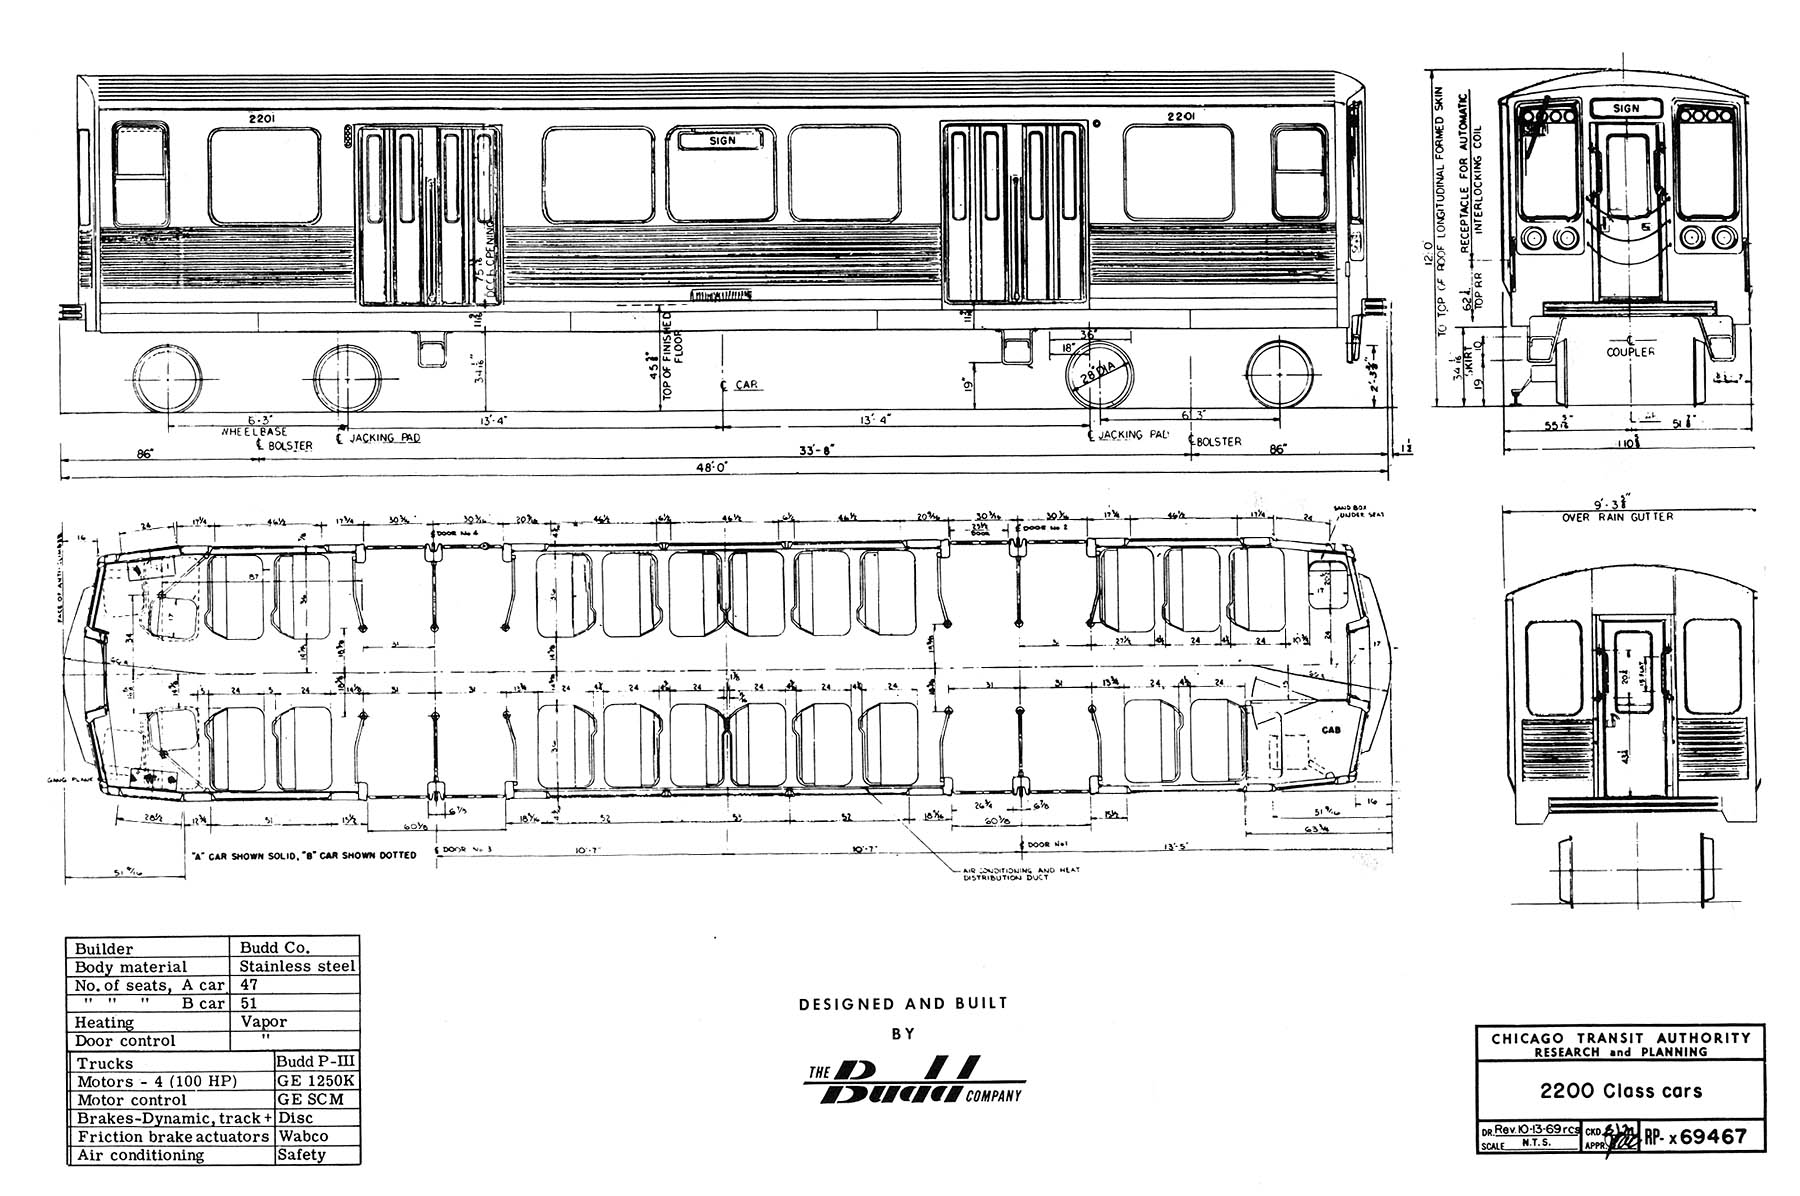 auto train diagram us branches of government subway car free engine image for user